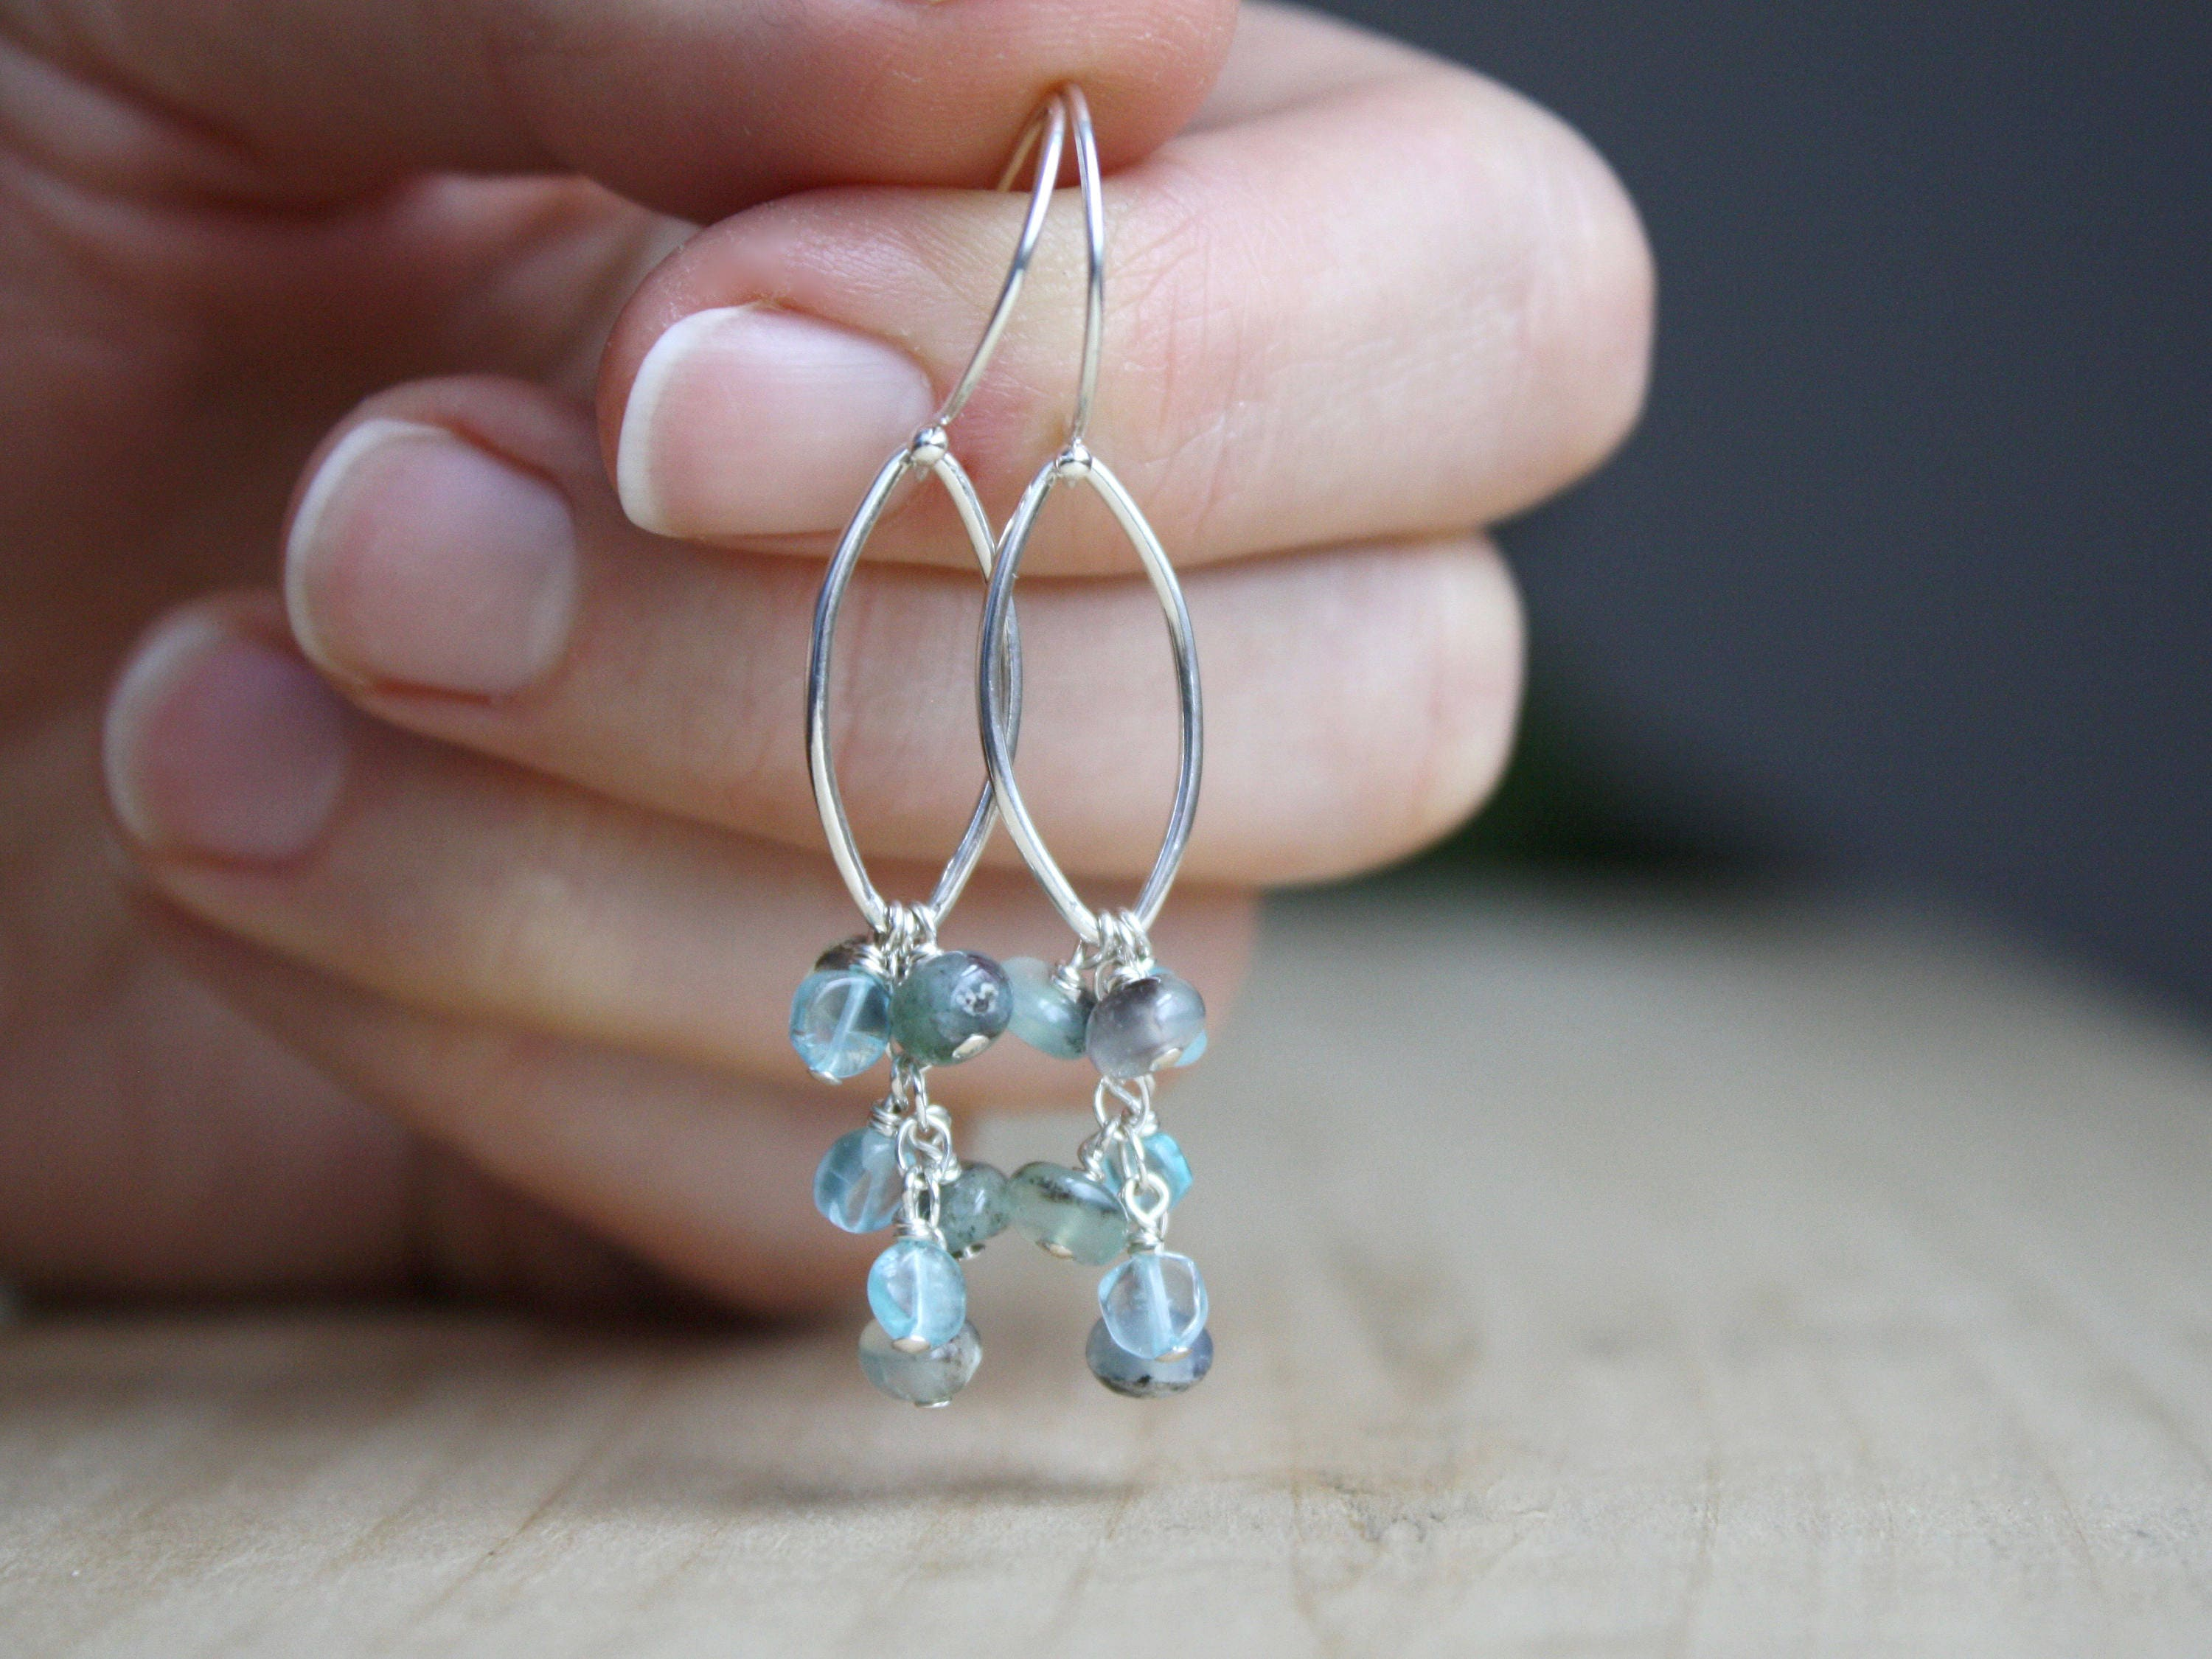 apatite foamy simple drop handmade products wader earrings blue lagoon gemstone neon